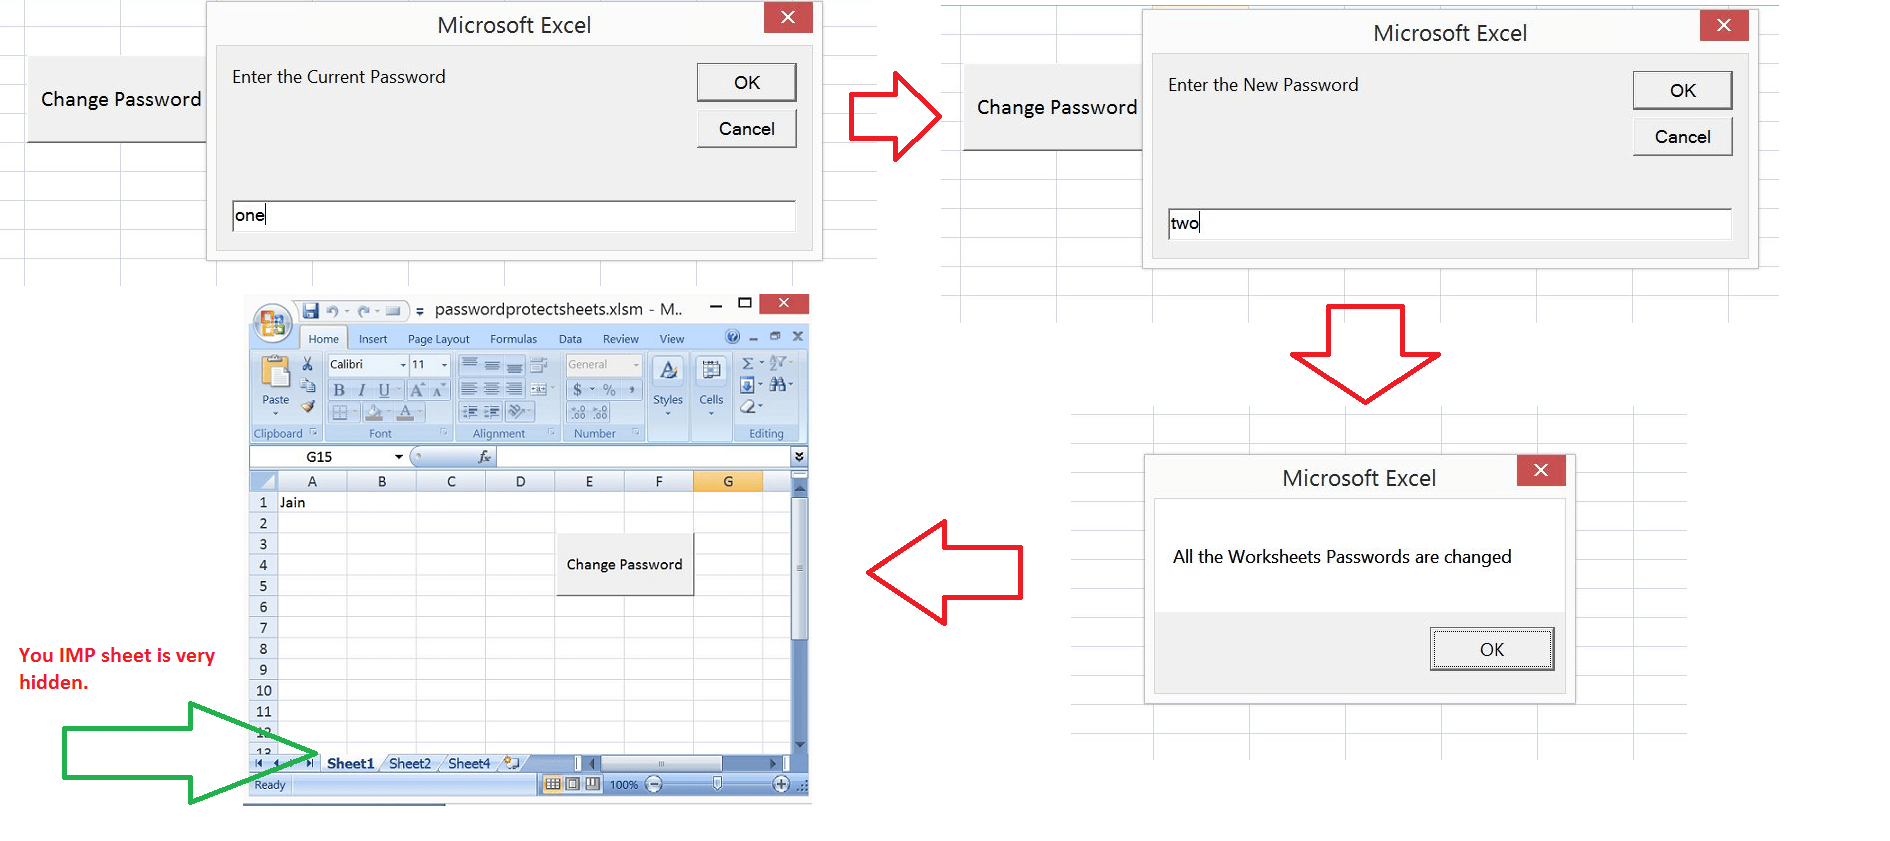 Excel Vba Change Passwords For All The Worksheets In One